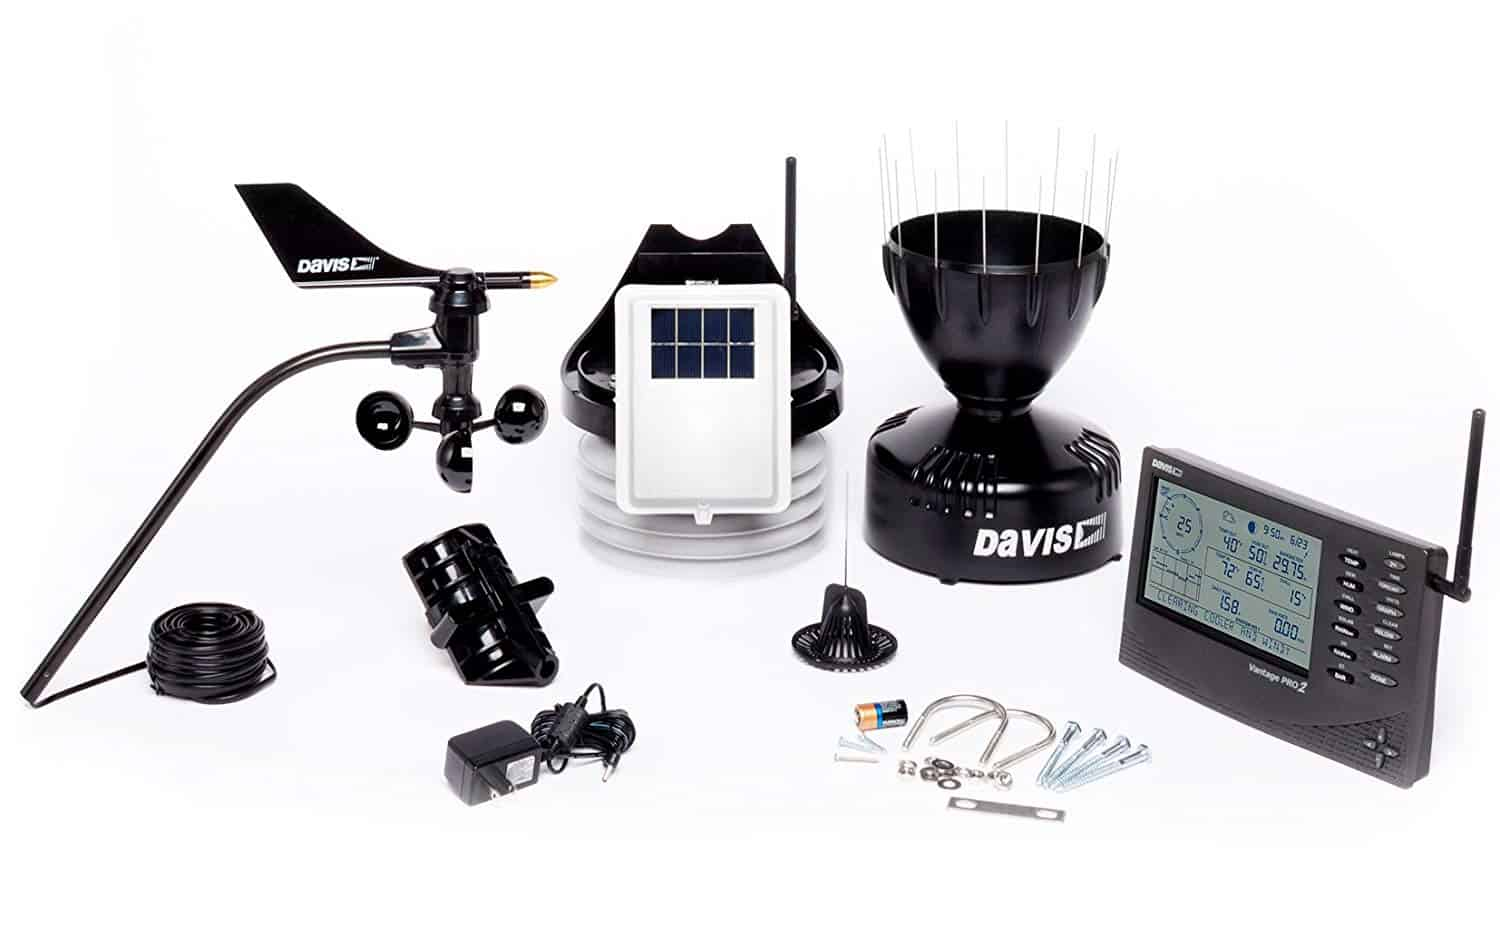 Davis Instruments 6152 Vantage Pro2 Wireless Weather Station with Standard Radiation Shield and LCD Display Console